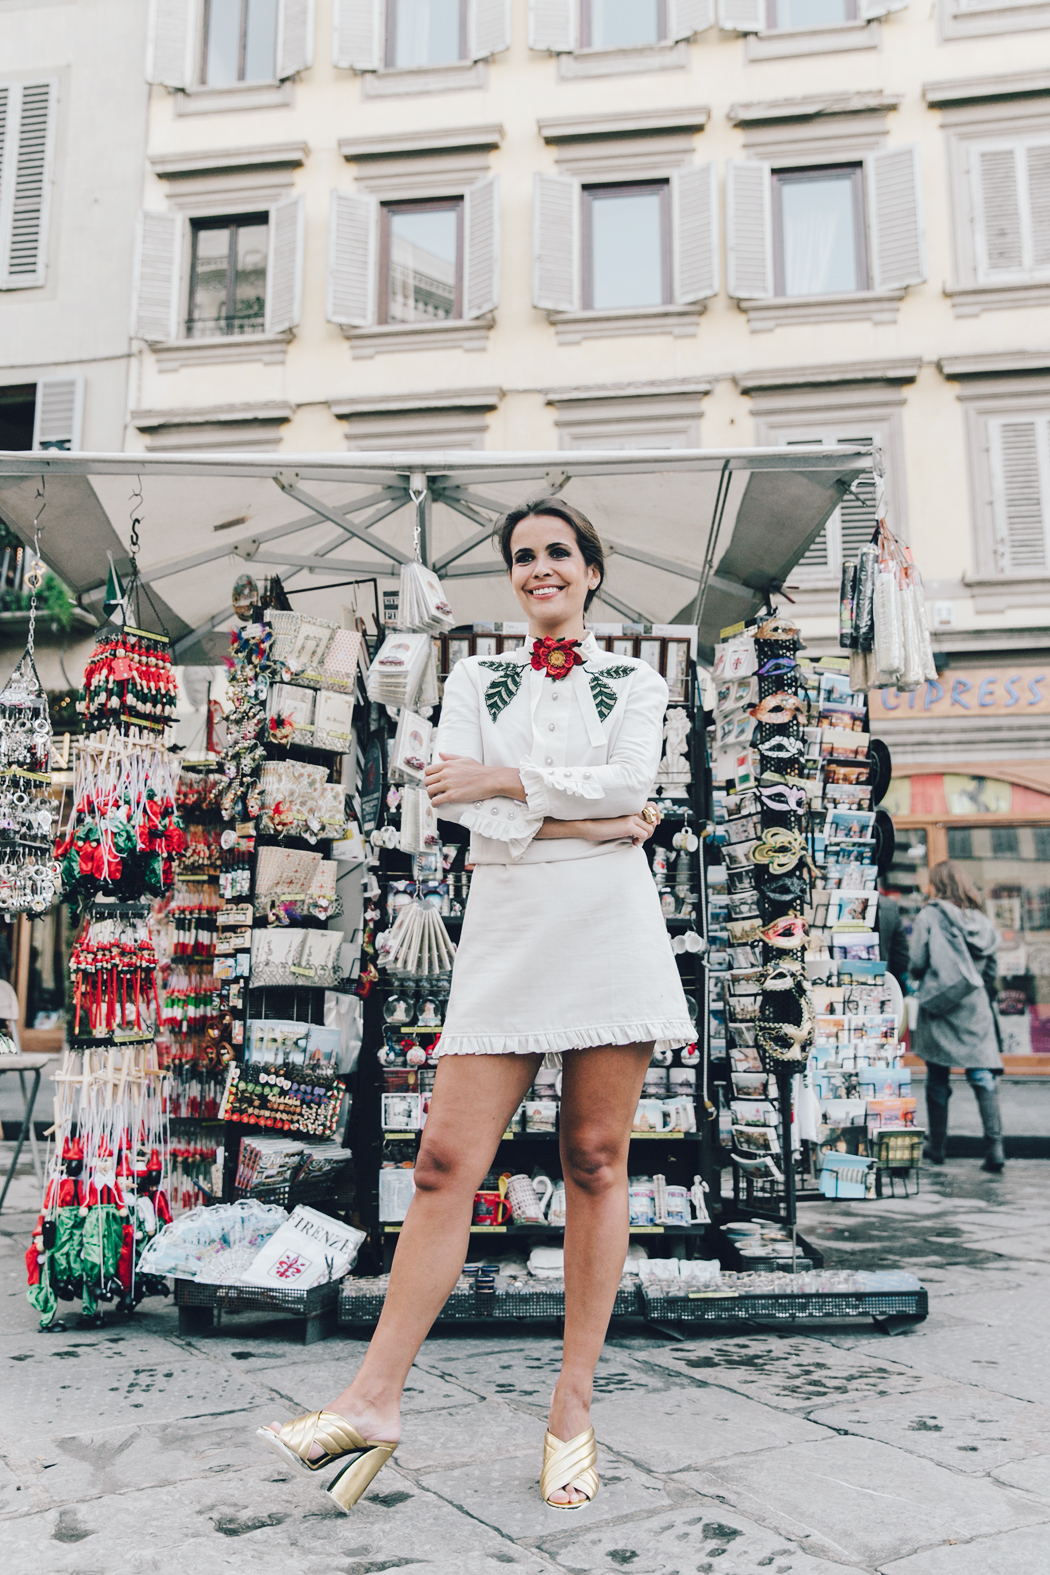 Firenze4Ever-Luisa_VIa_Roma-Gucci_White_Dress-Gucci_Gold_Sandals-Outfit-Florence-Street_Style-21